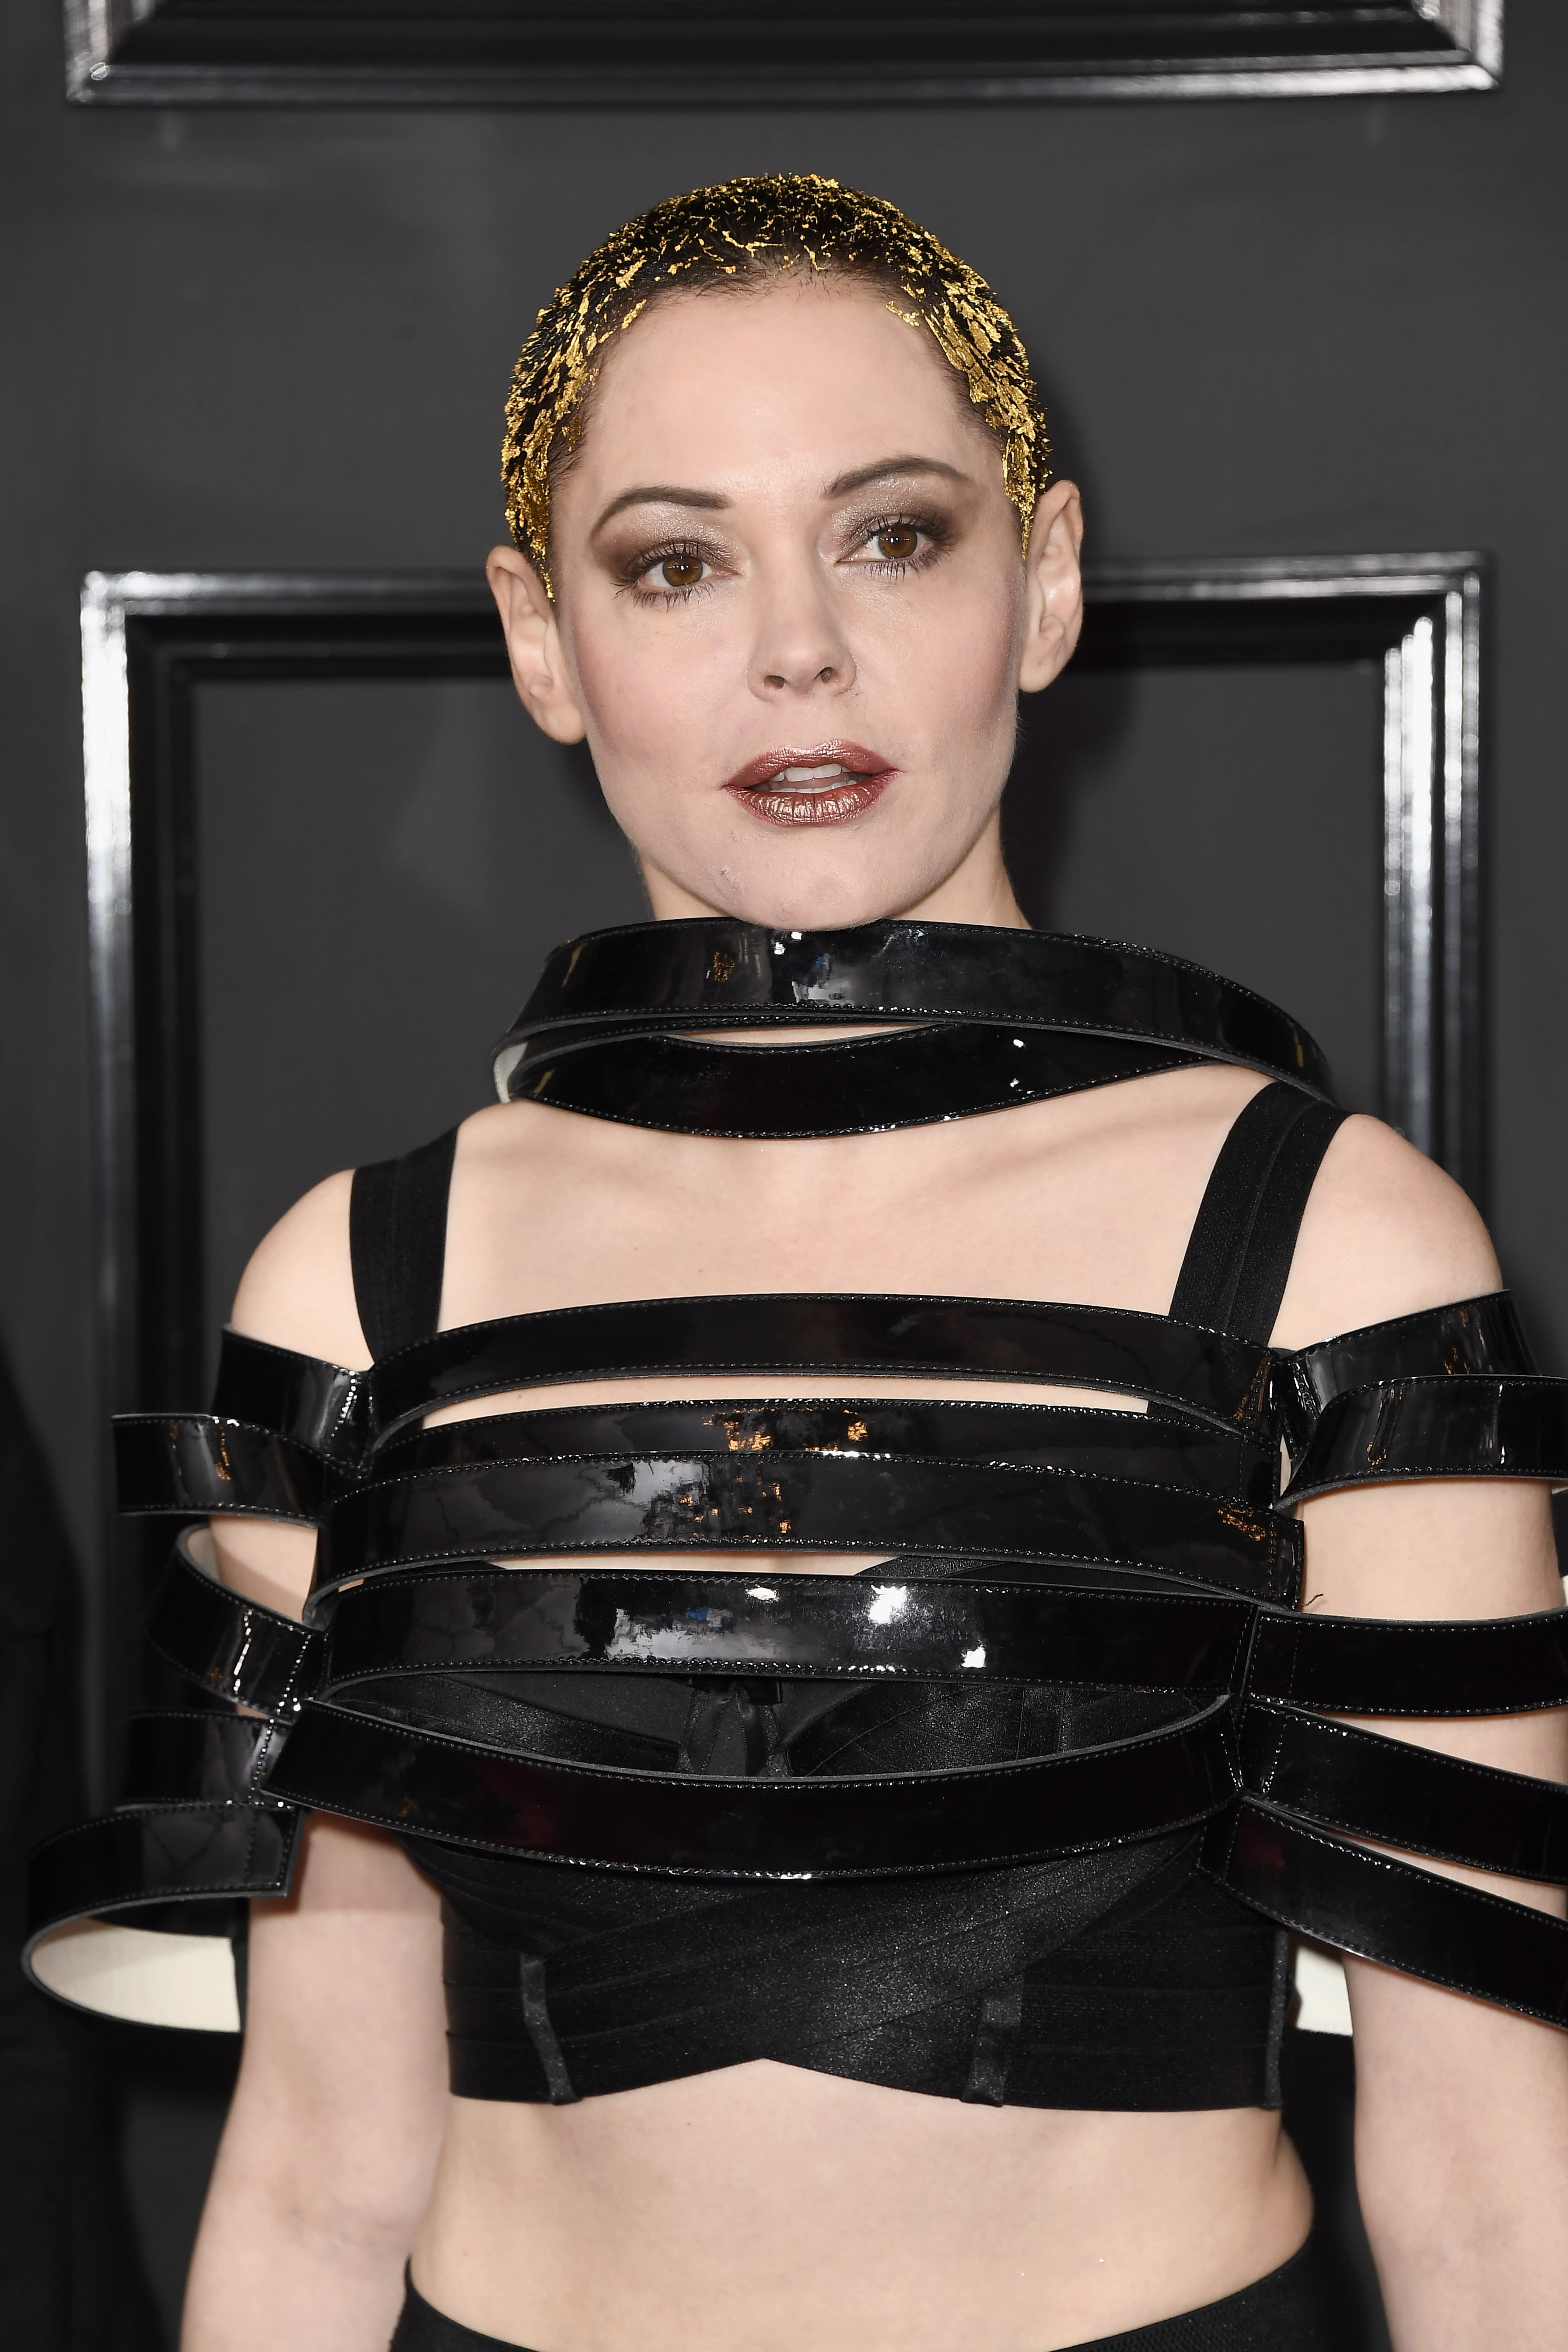 Rose McGowan in 2017. (Photo: Getty Images)